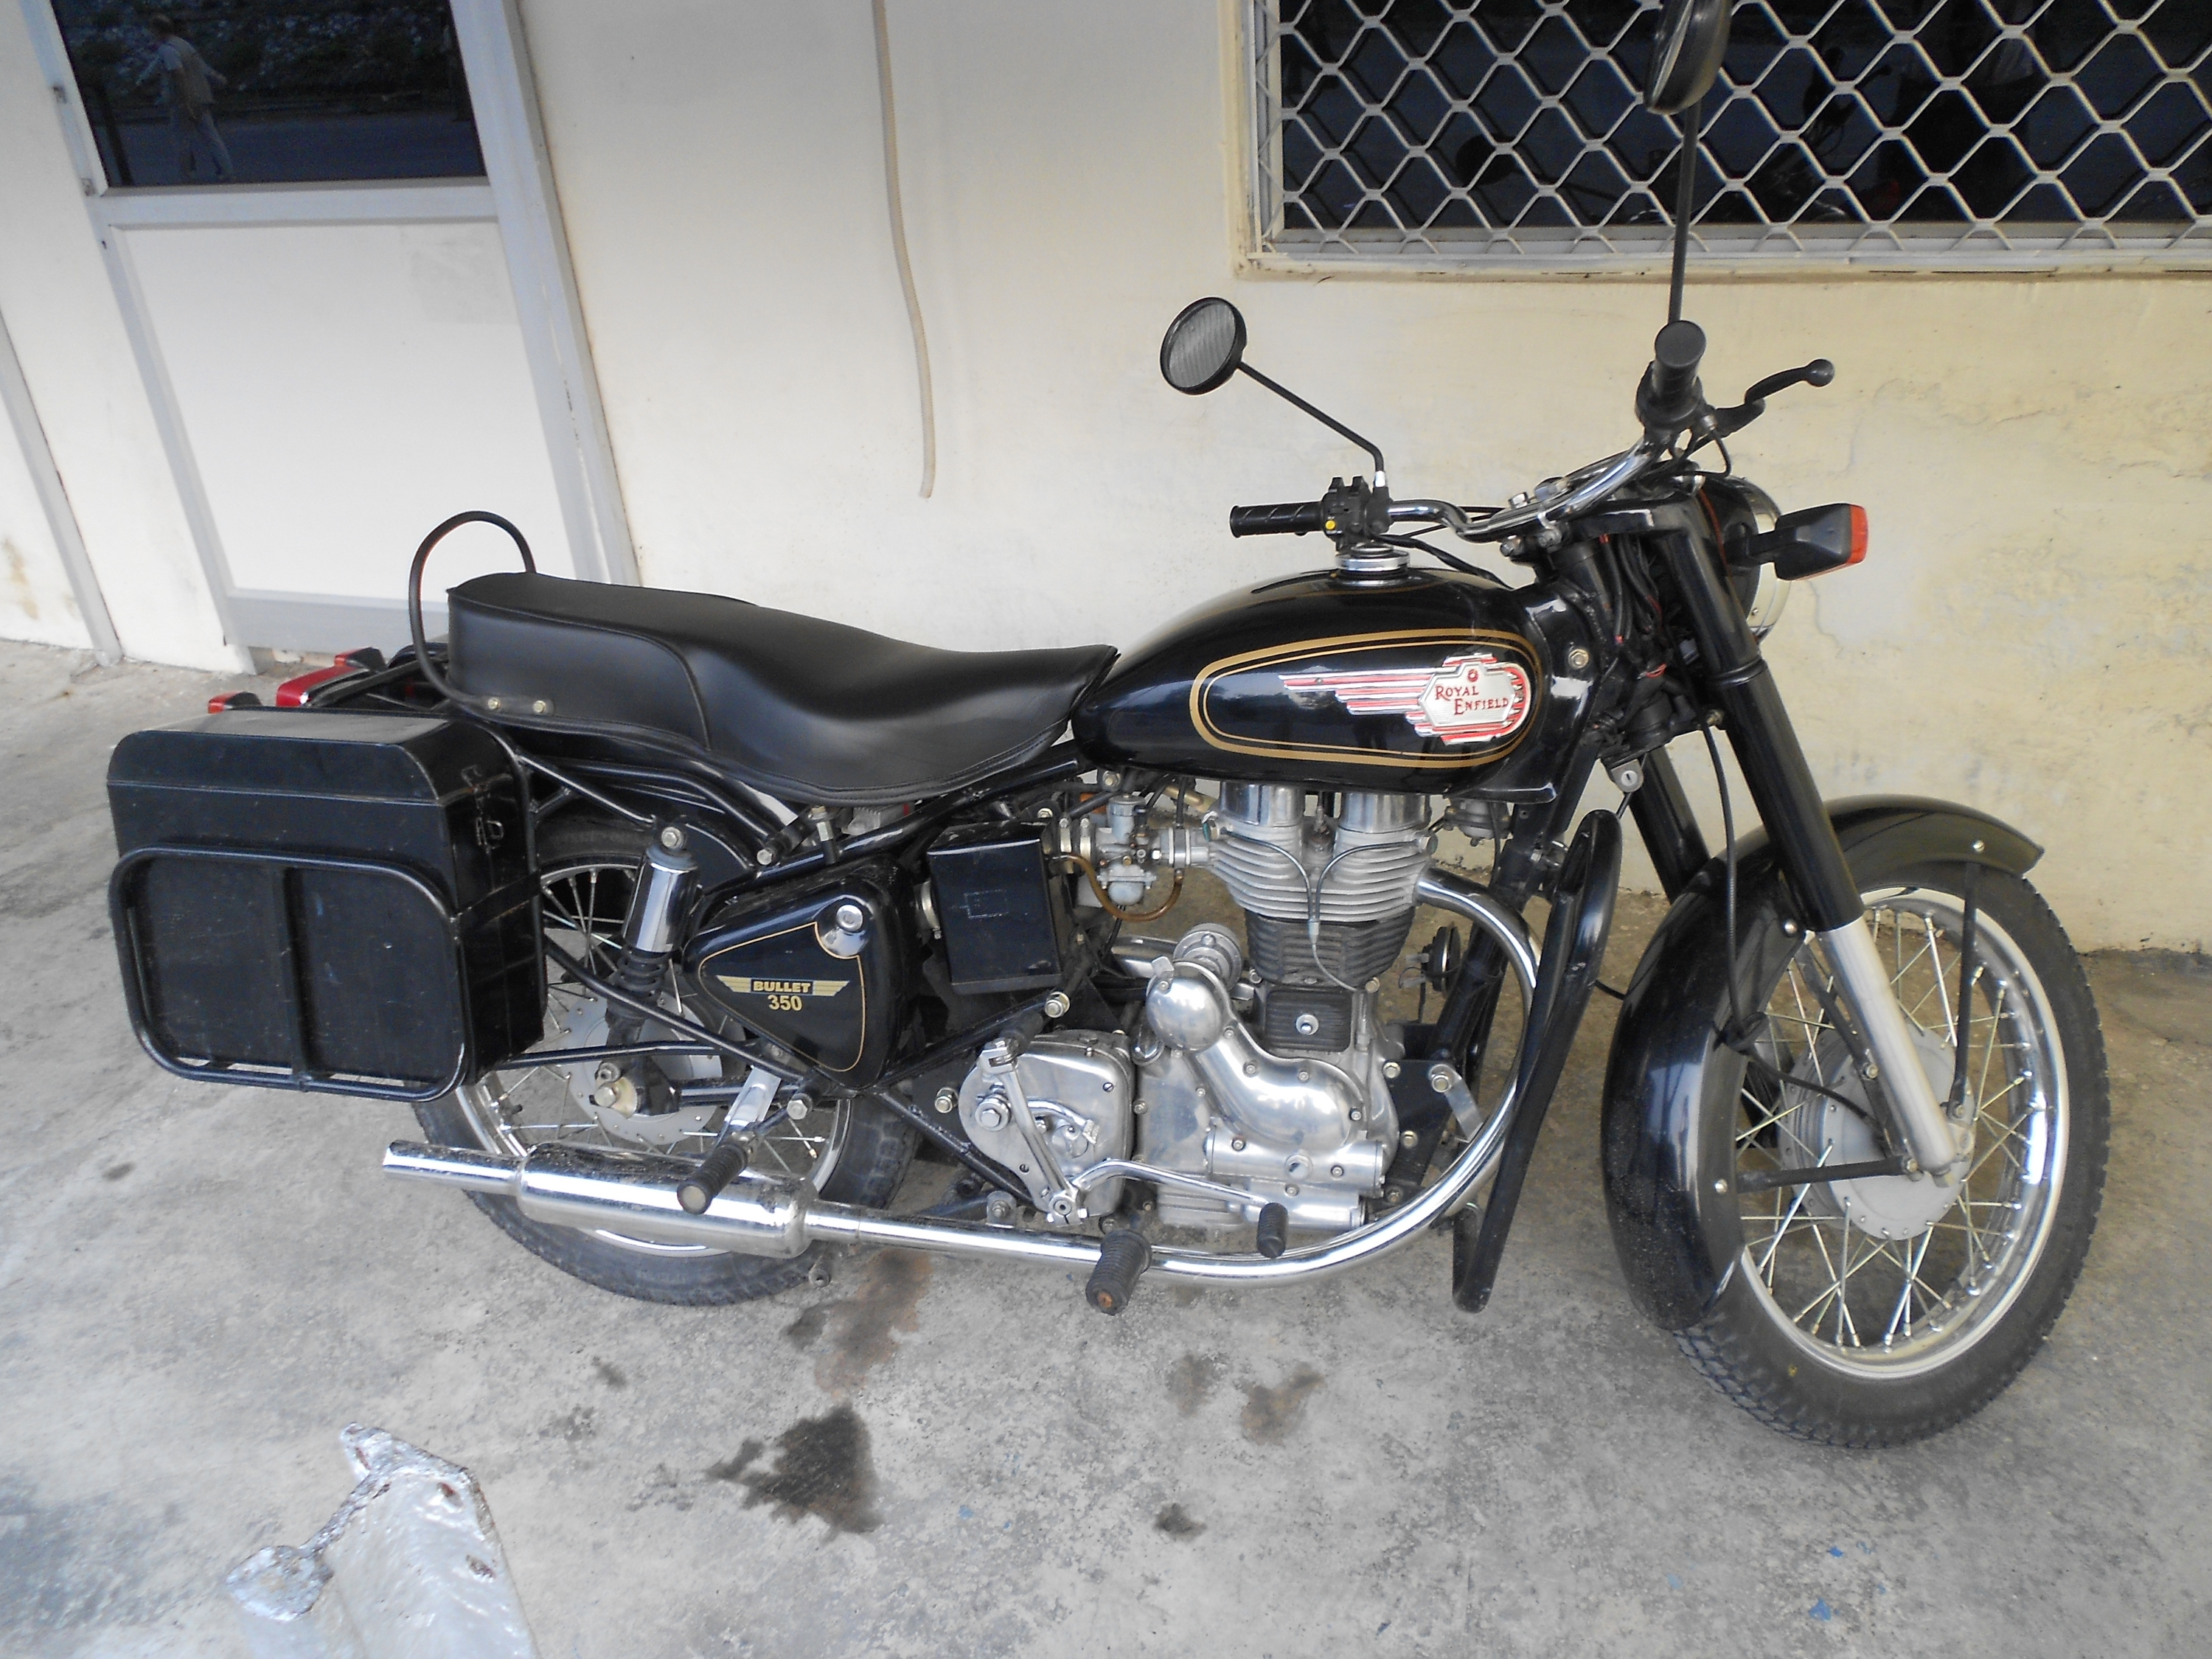 Royal Enfield Bullet 500 Army 1995 images #122810